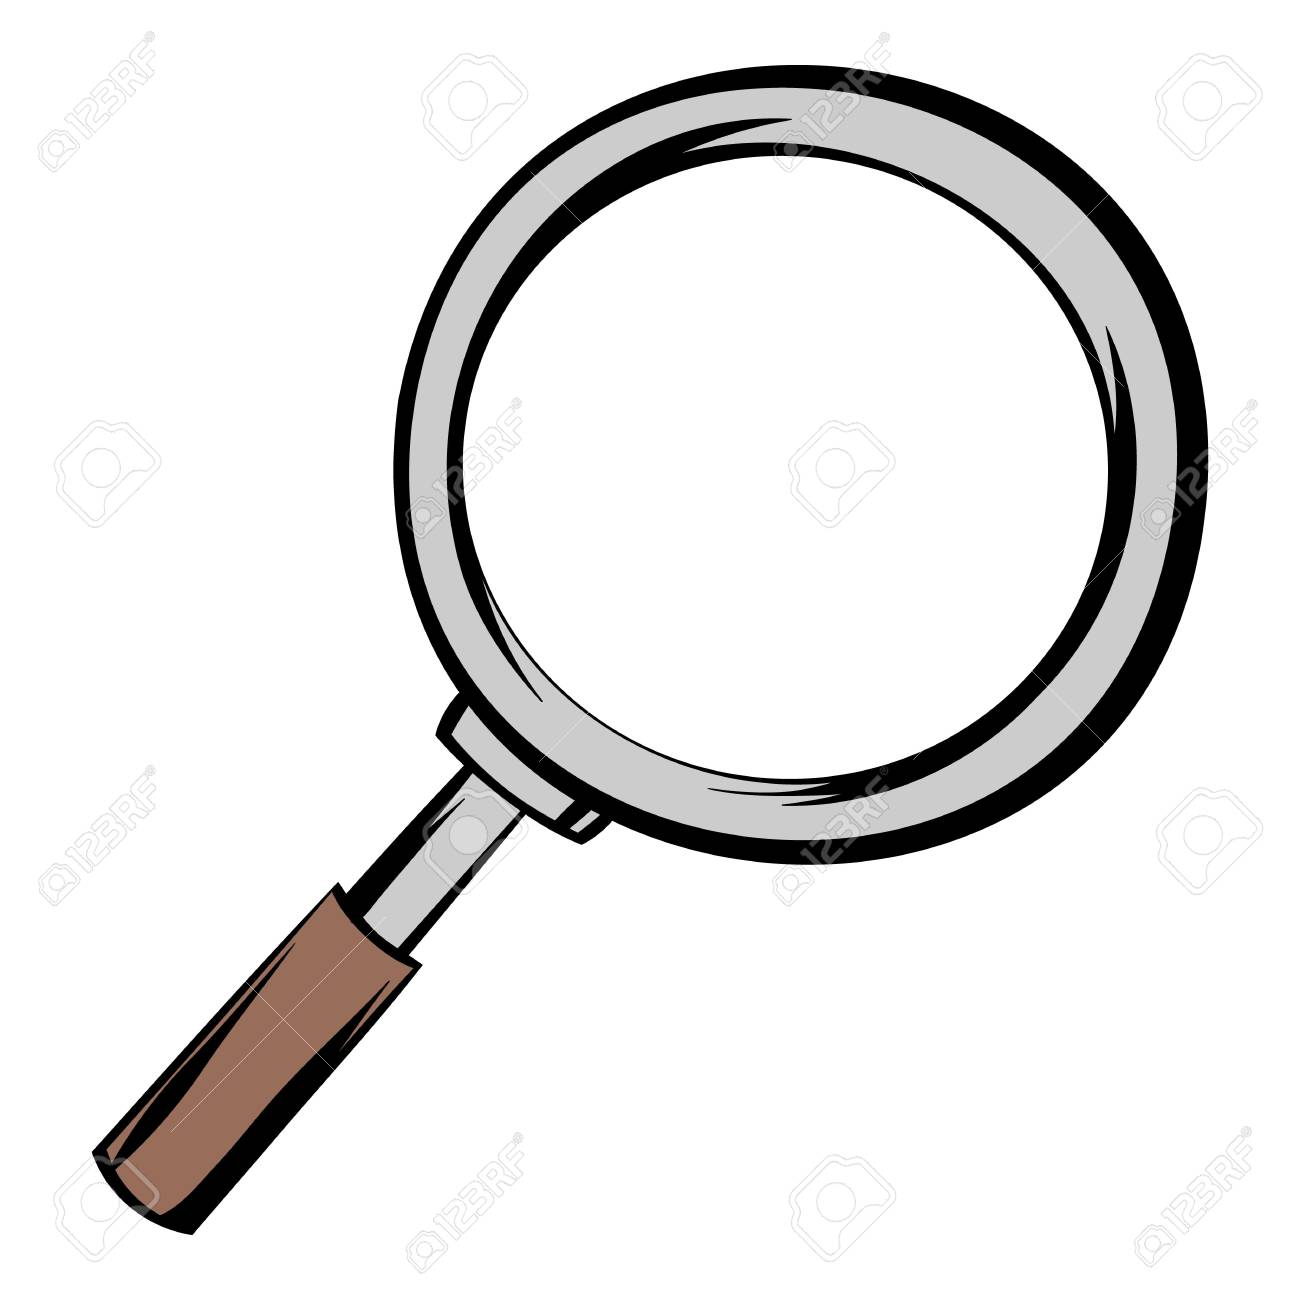 Magnifying Glass Icon Cartoon Royalty Free Cliparts, Vectors, And ...